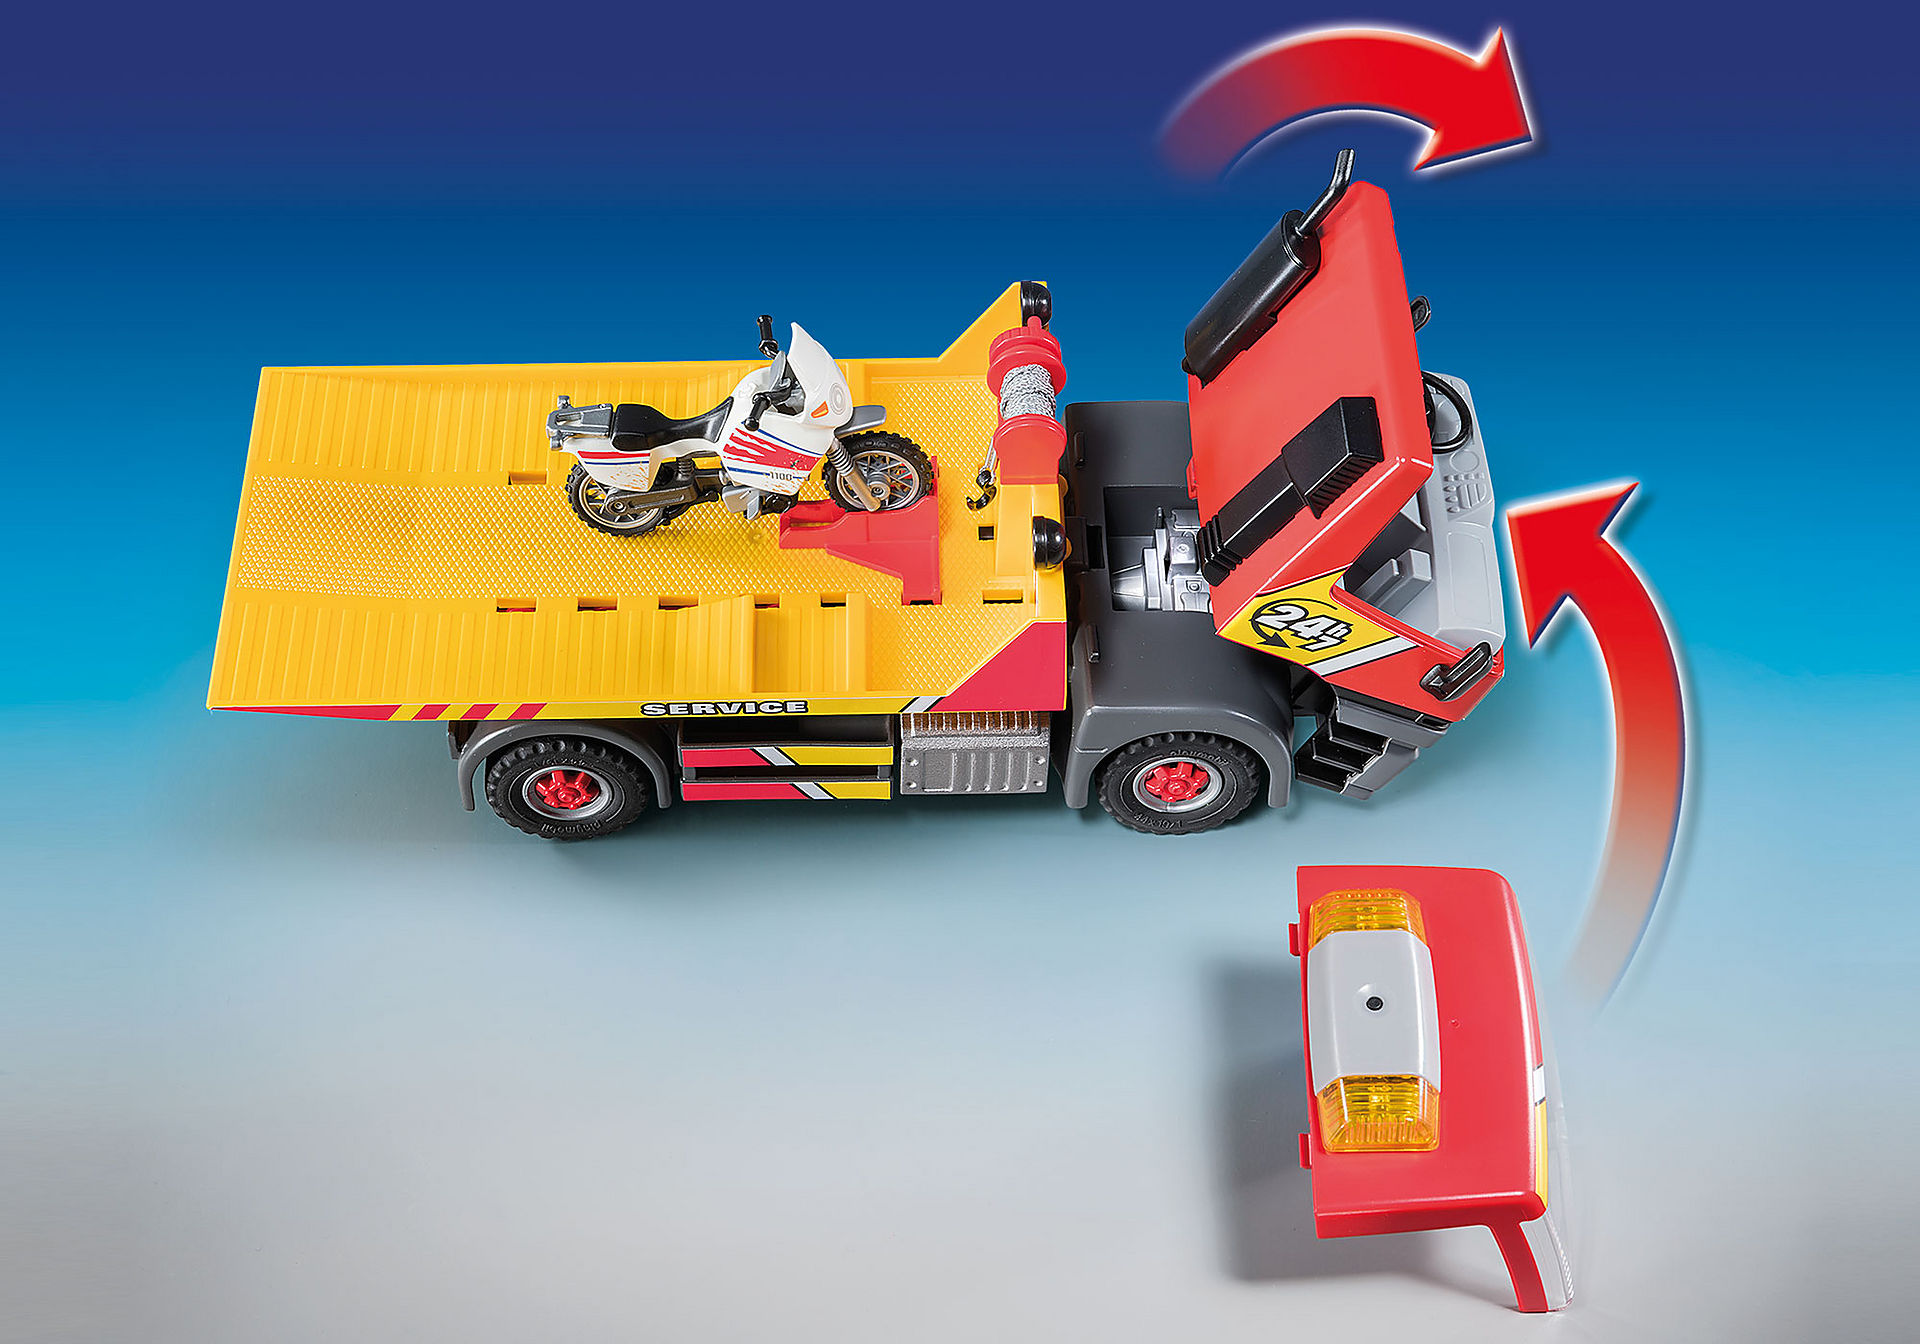 70199 Towing Service zoom image5